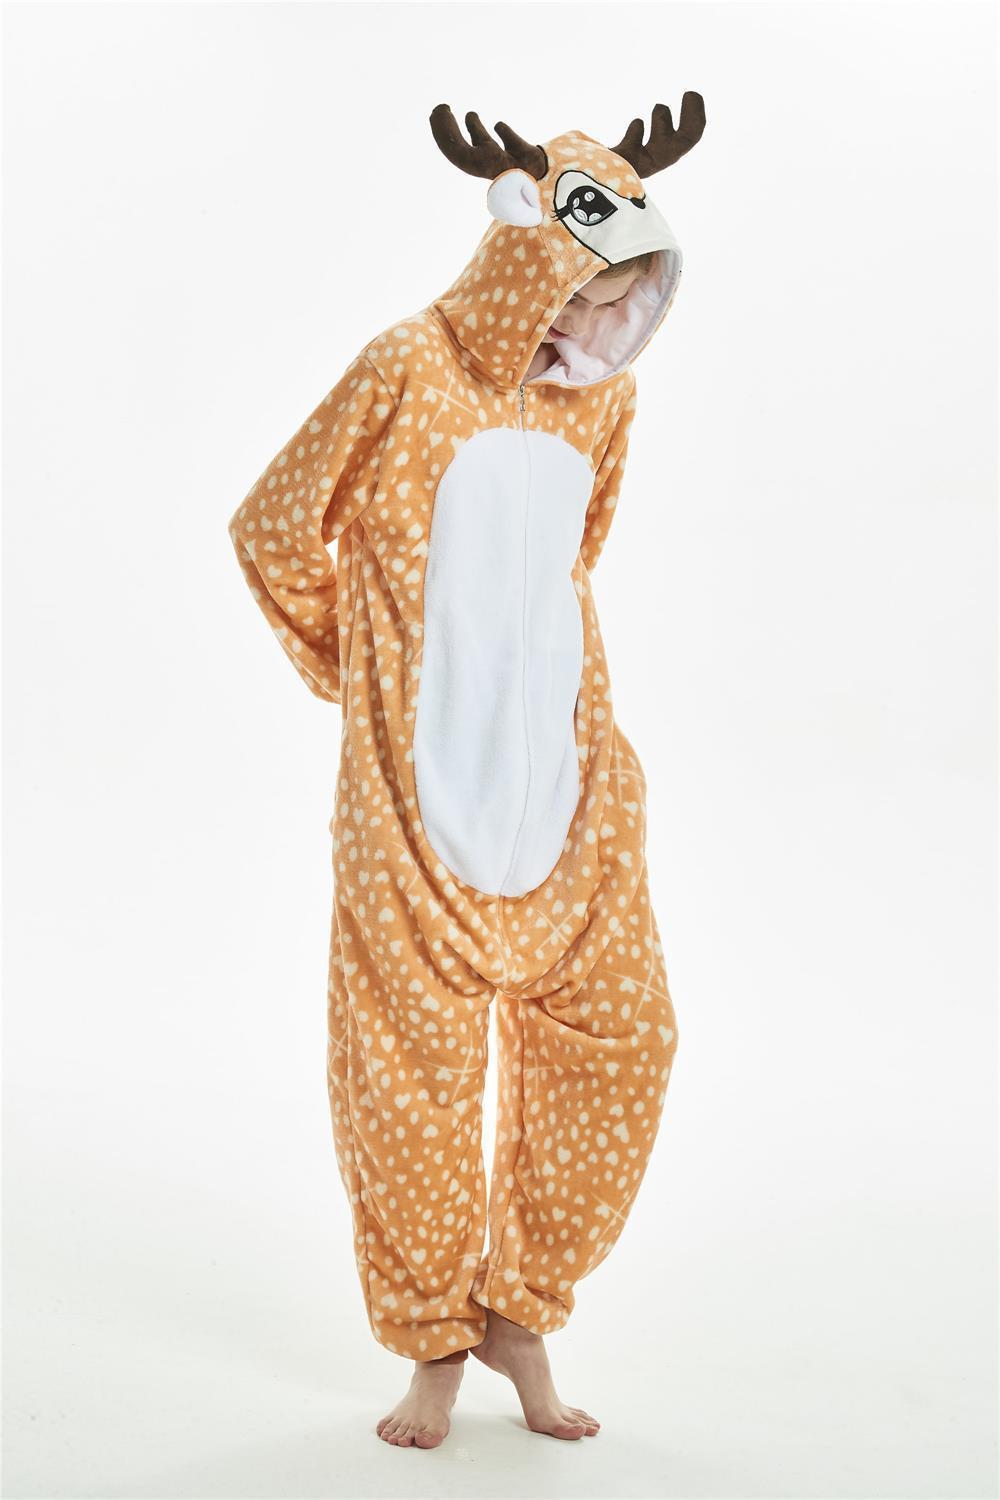 119a5e2465 Detail Feedback Questions about new Kigurumi flannel unicorn Adult Pyjamas  Cosplay Costume small deer Onesie Sleepwear Homewear Pajamas Party Clothing  Women ...